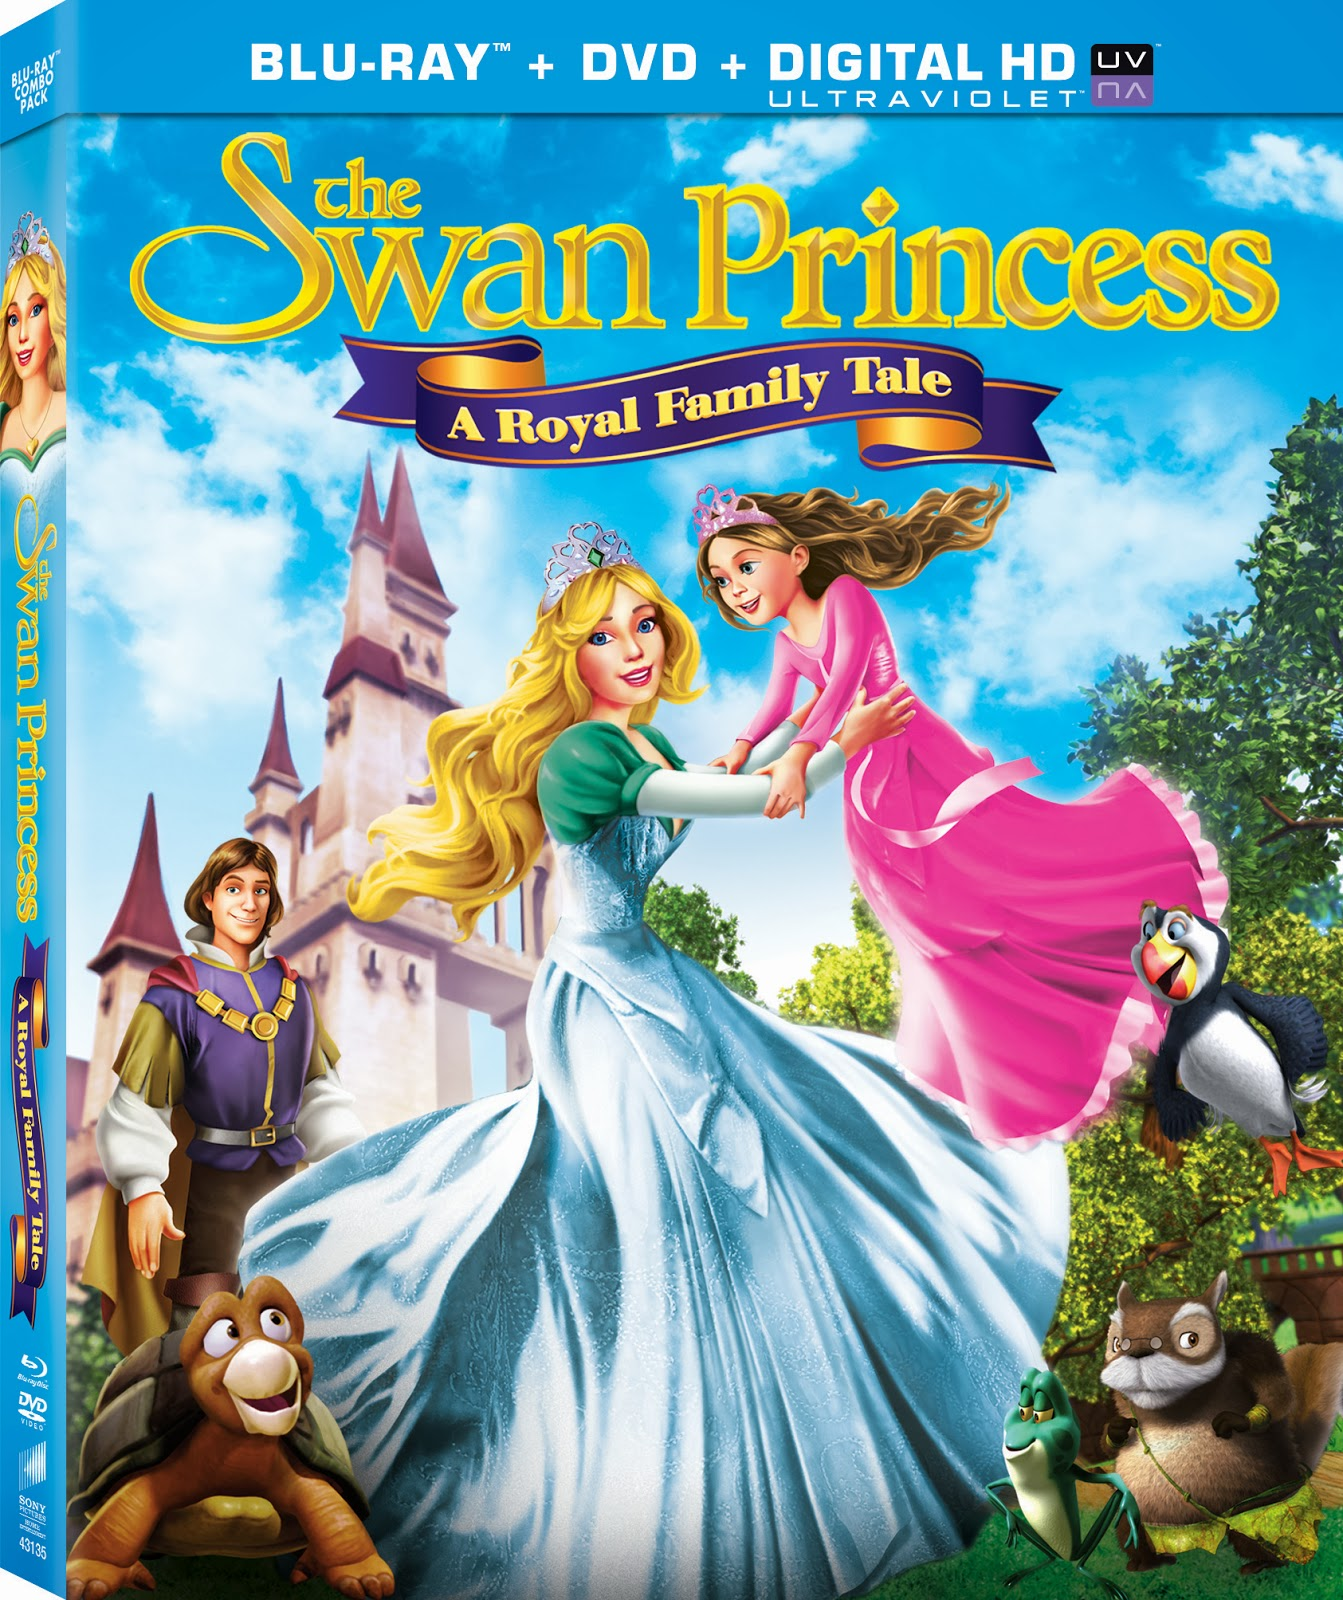 The swan princess a royal family tale the swan princess - Images princesse ...